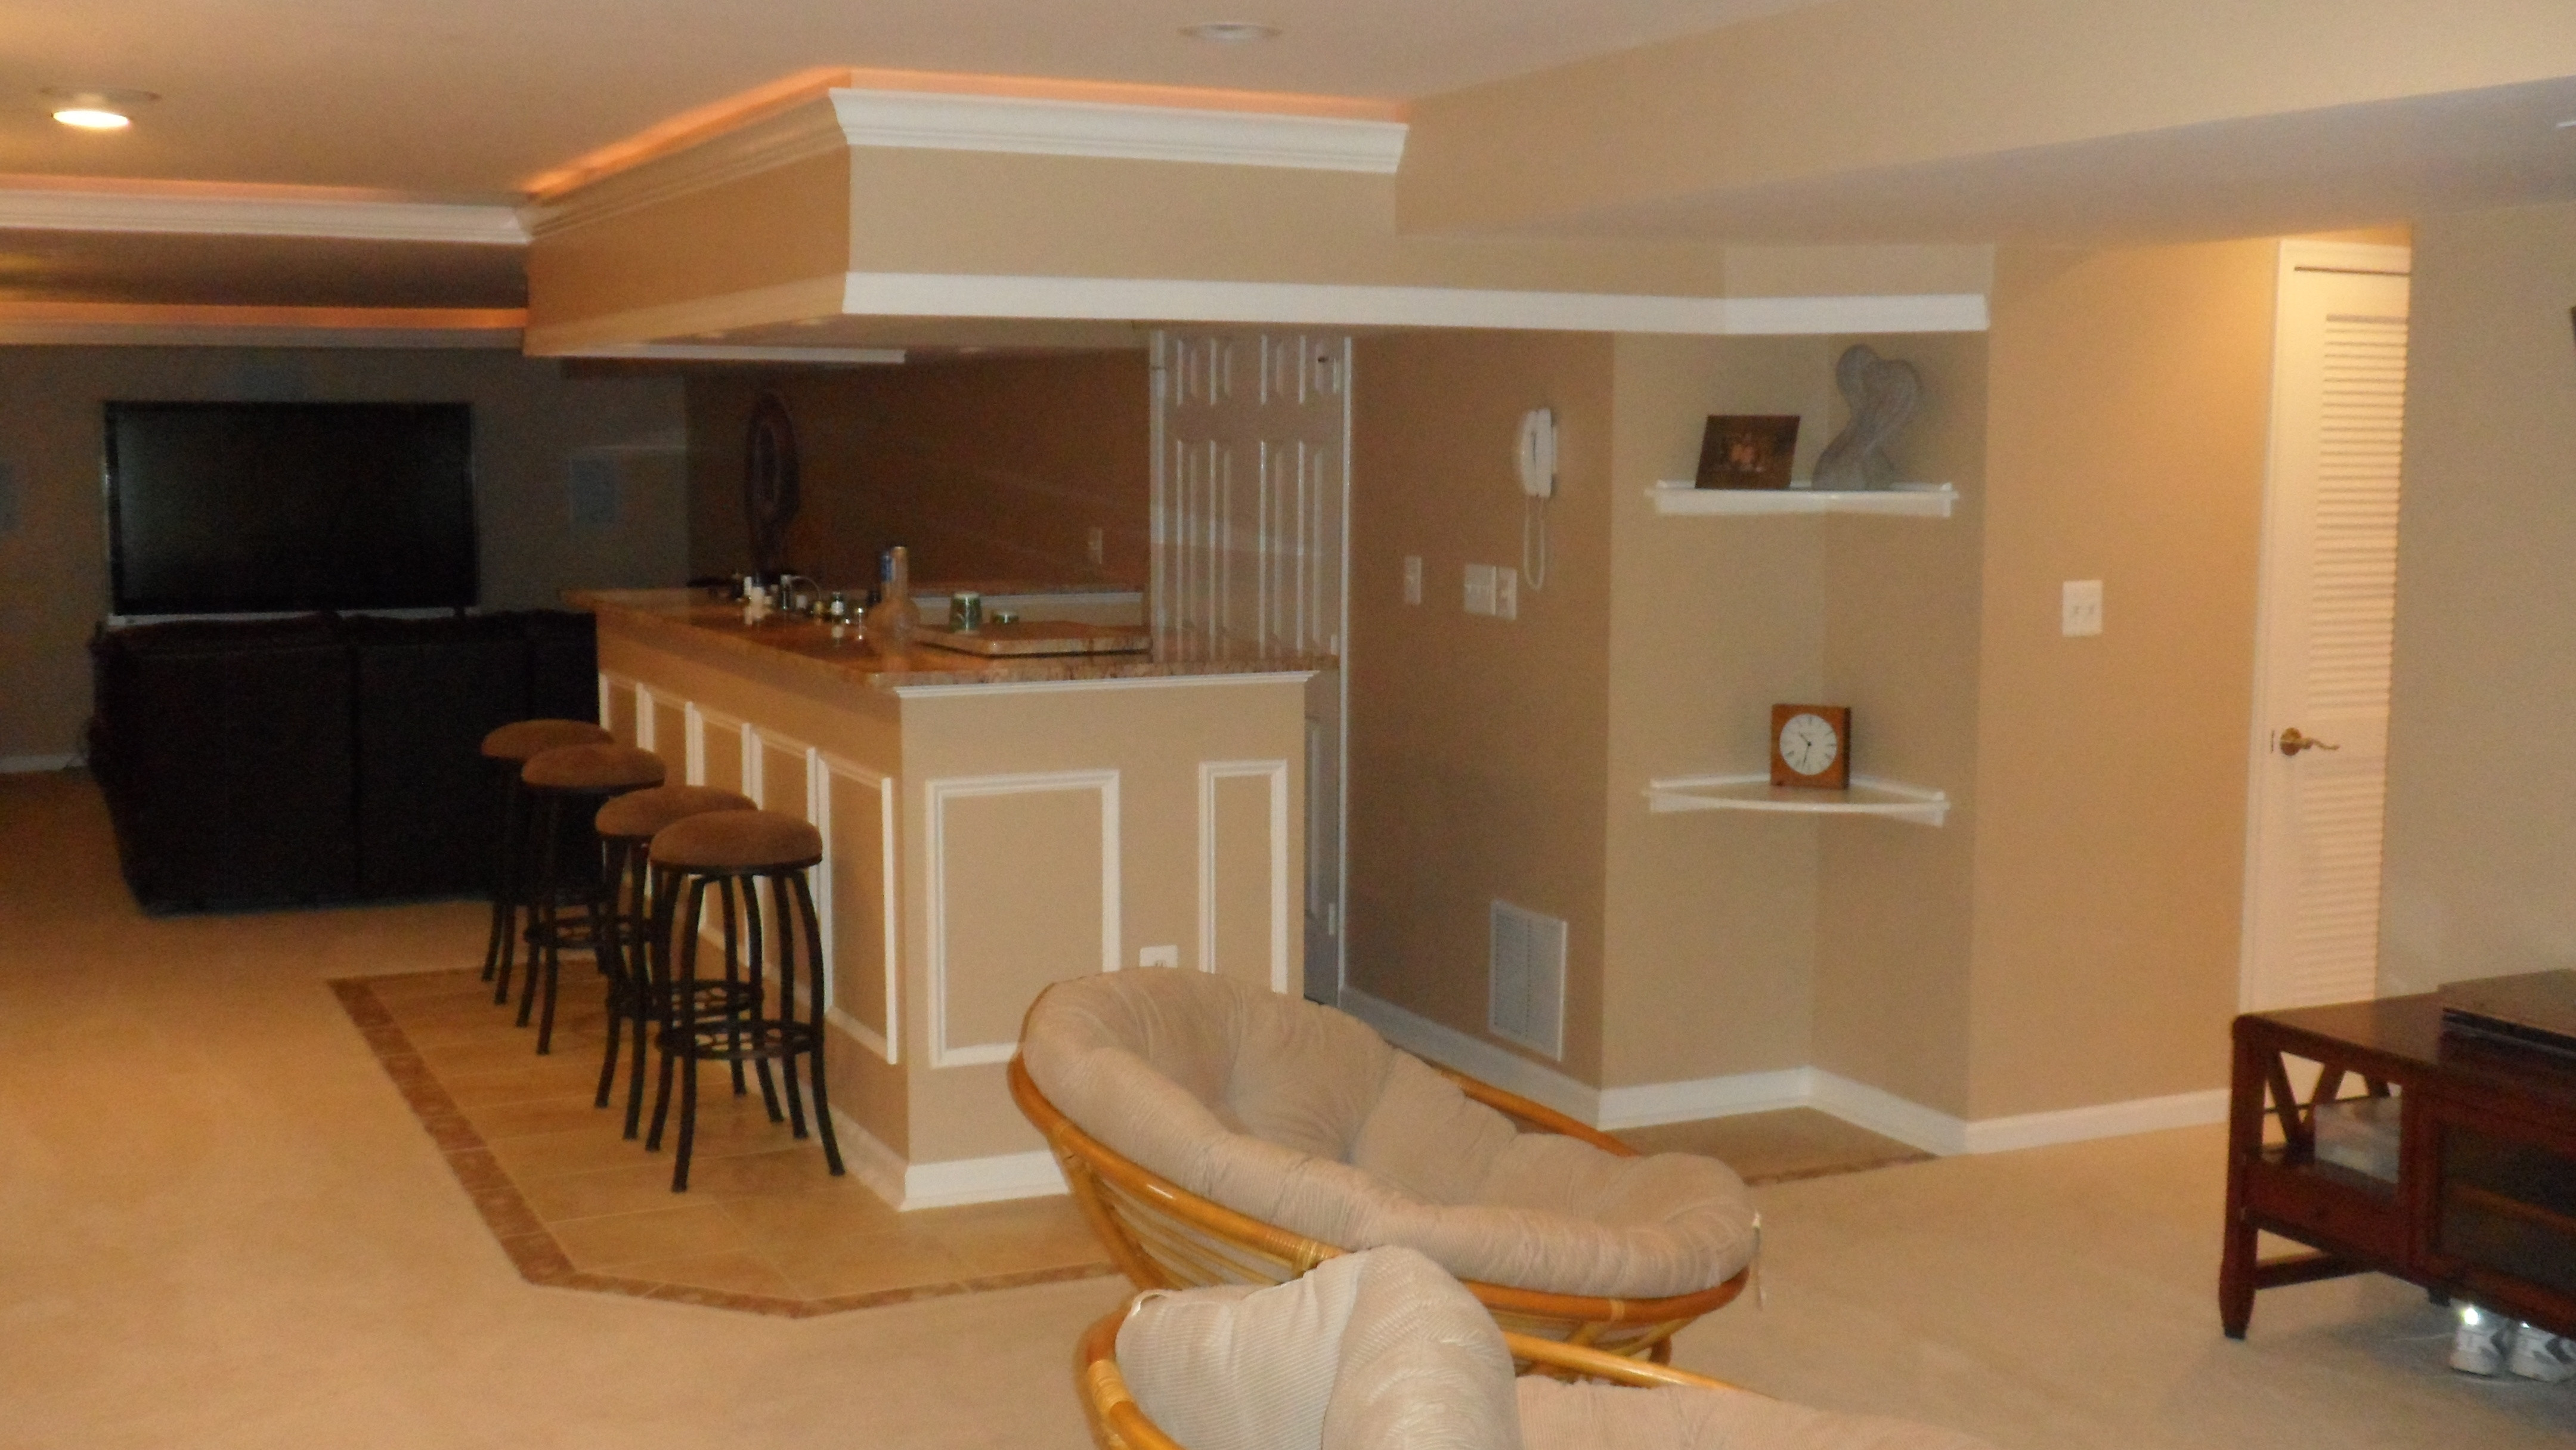 Best ideas about Small Basement Ideas . Save or Pin Decorate A Small Basement Bar Ideas — Cookwithalocal Home Now.